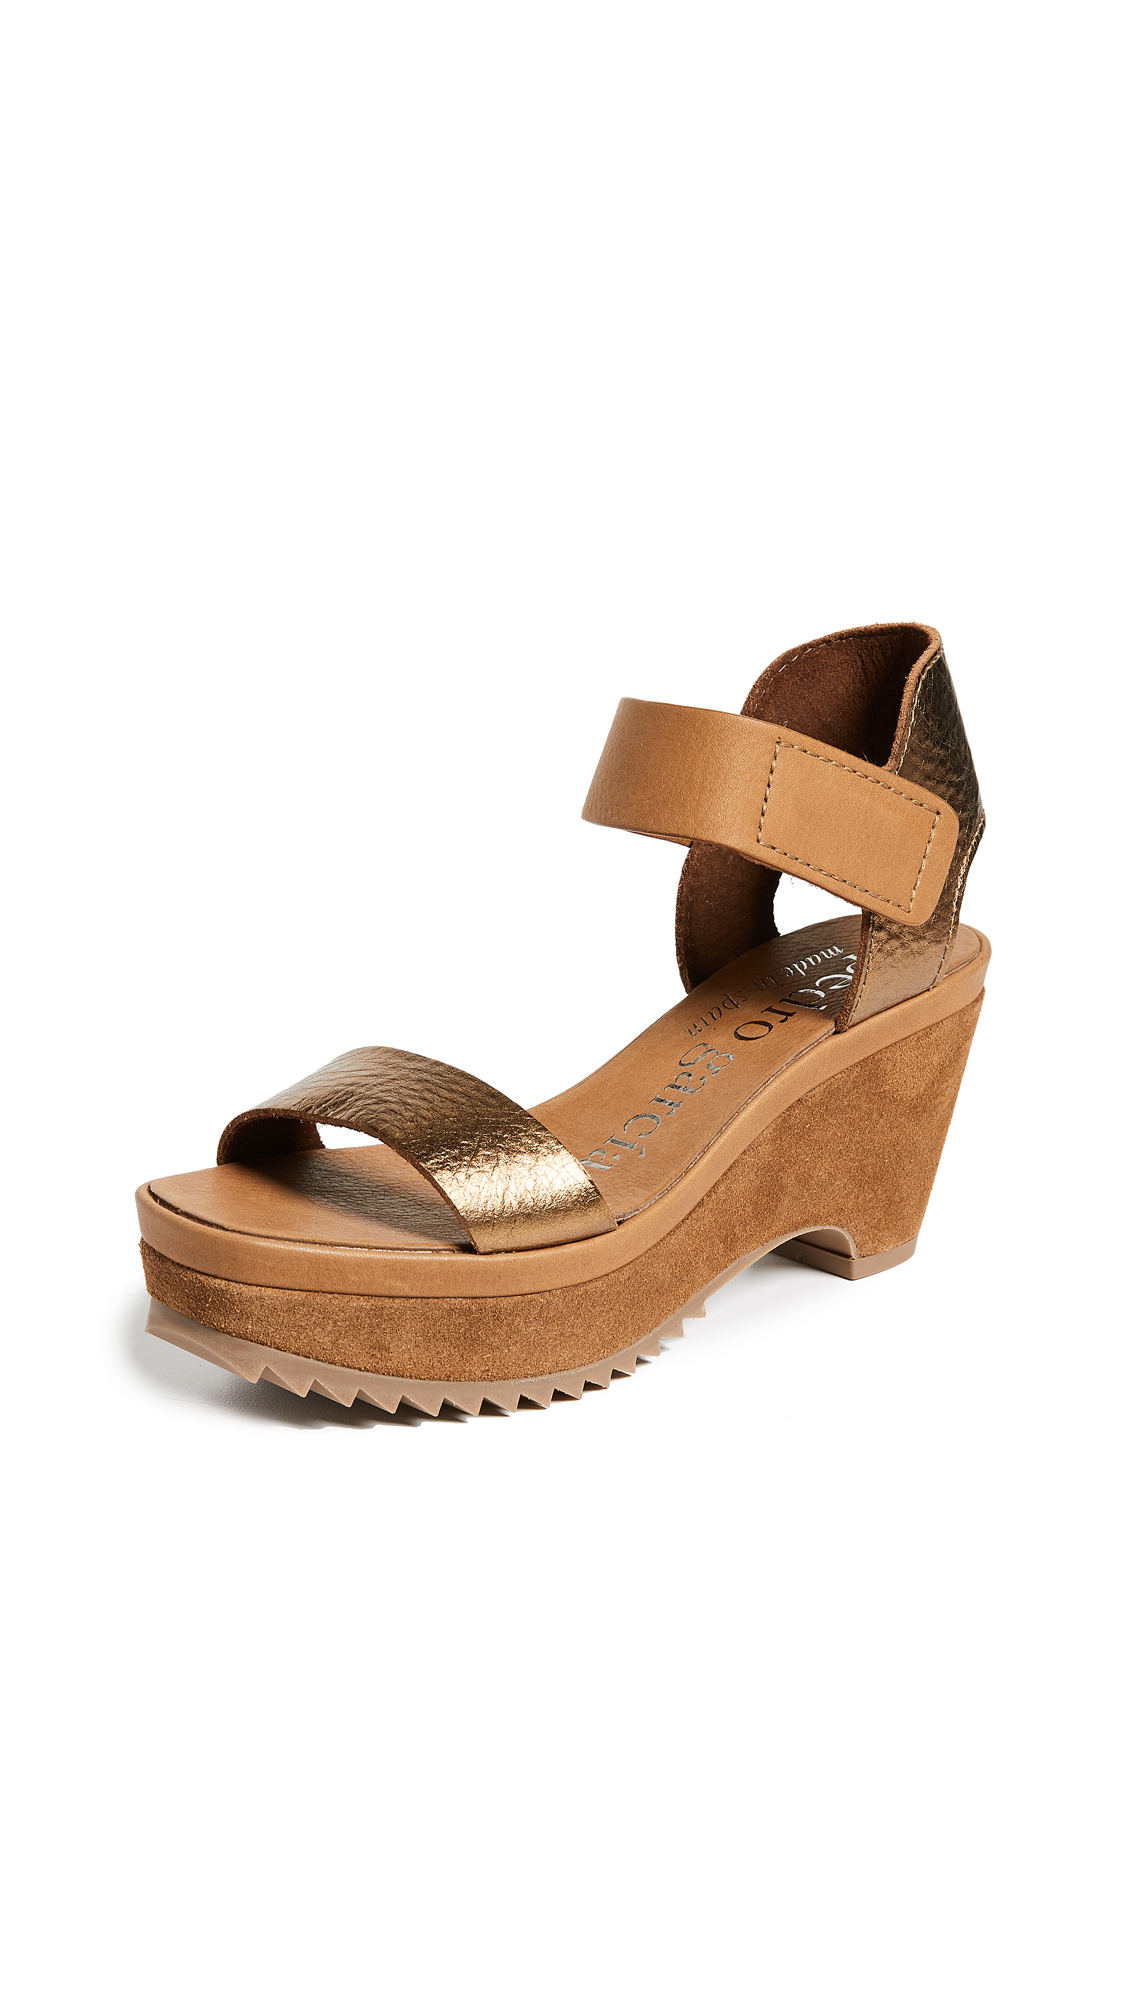 Pedro Garcia Franses Wedges - Tobacco